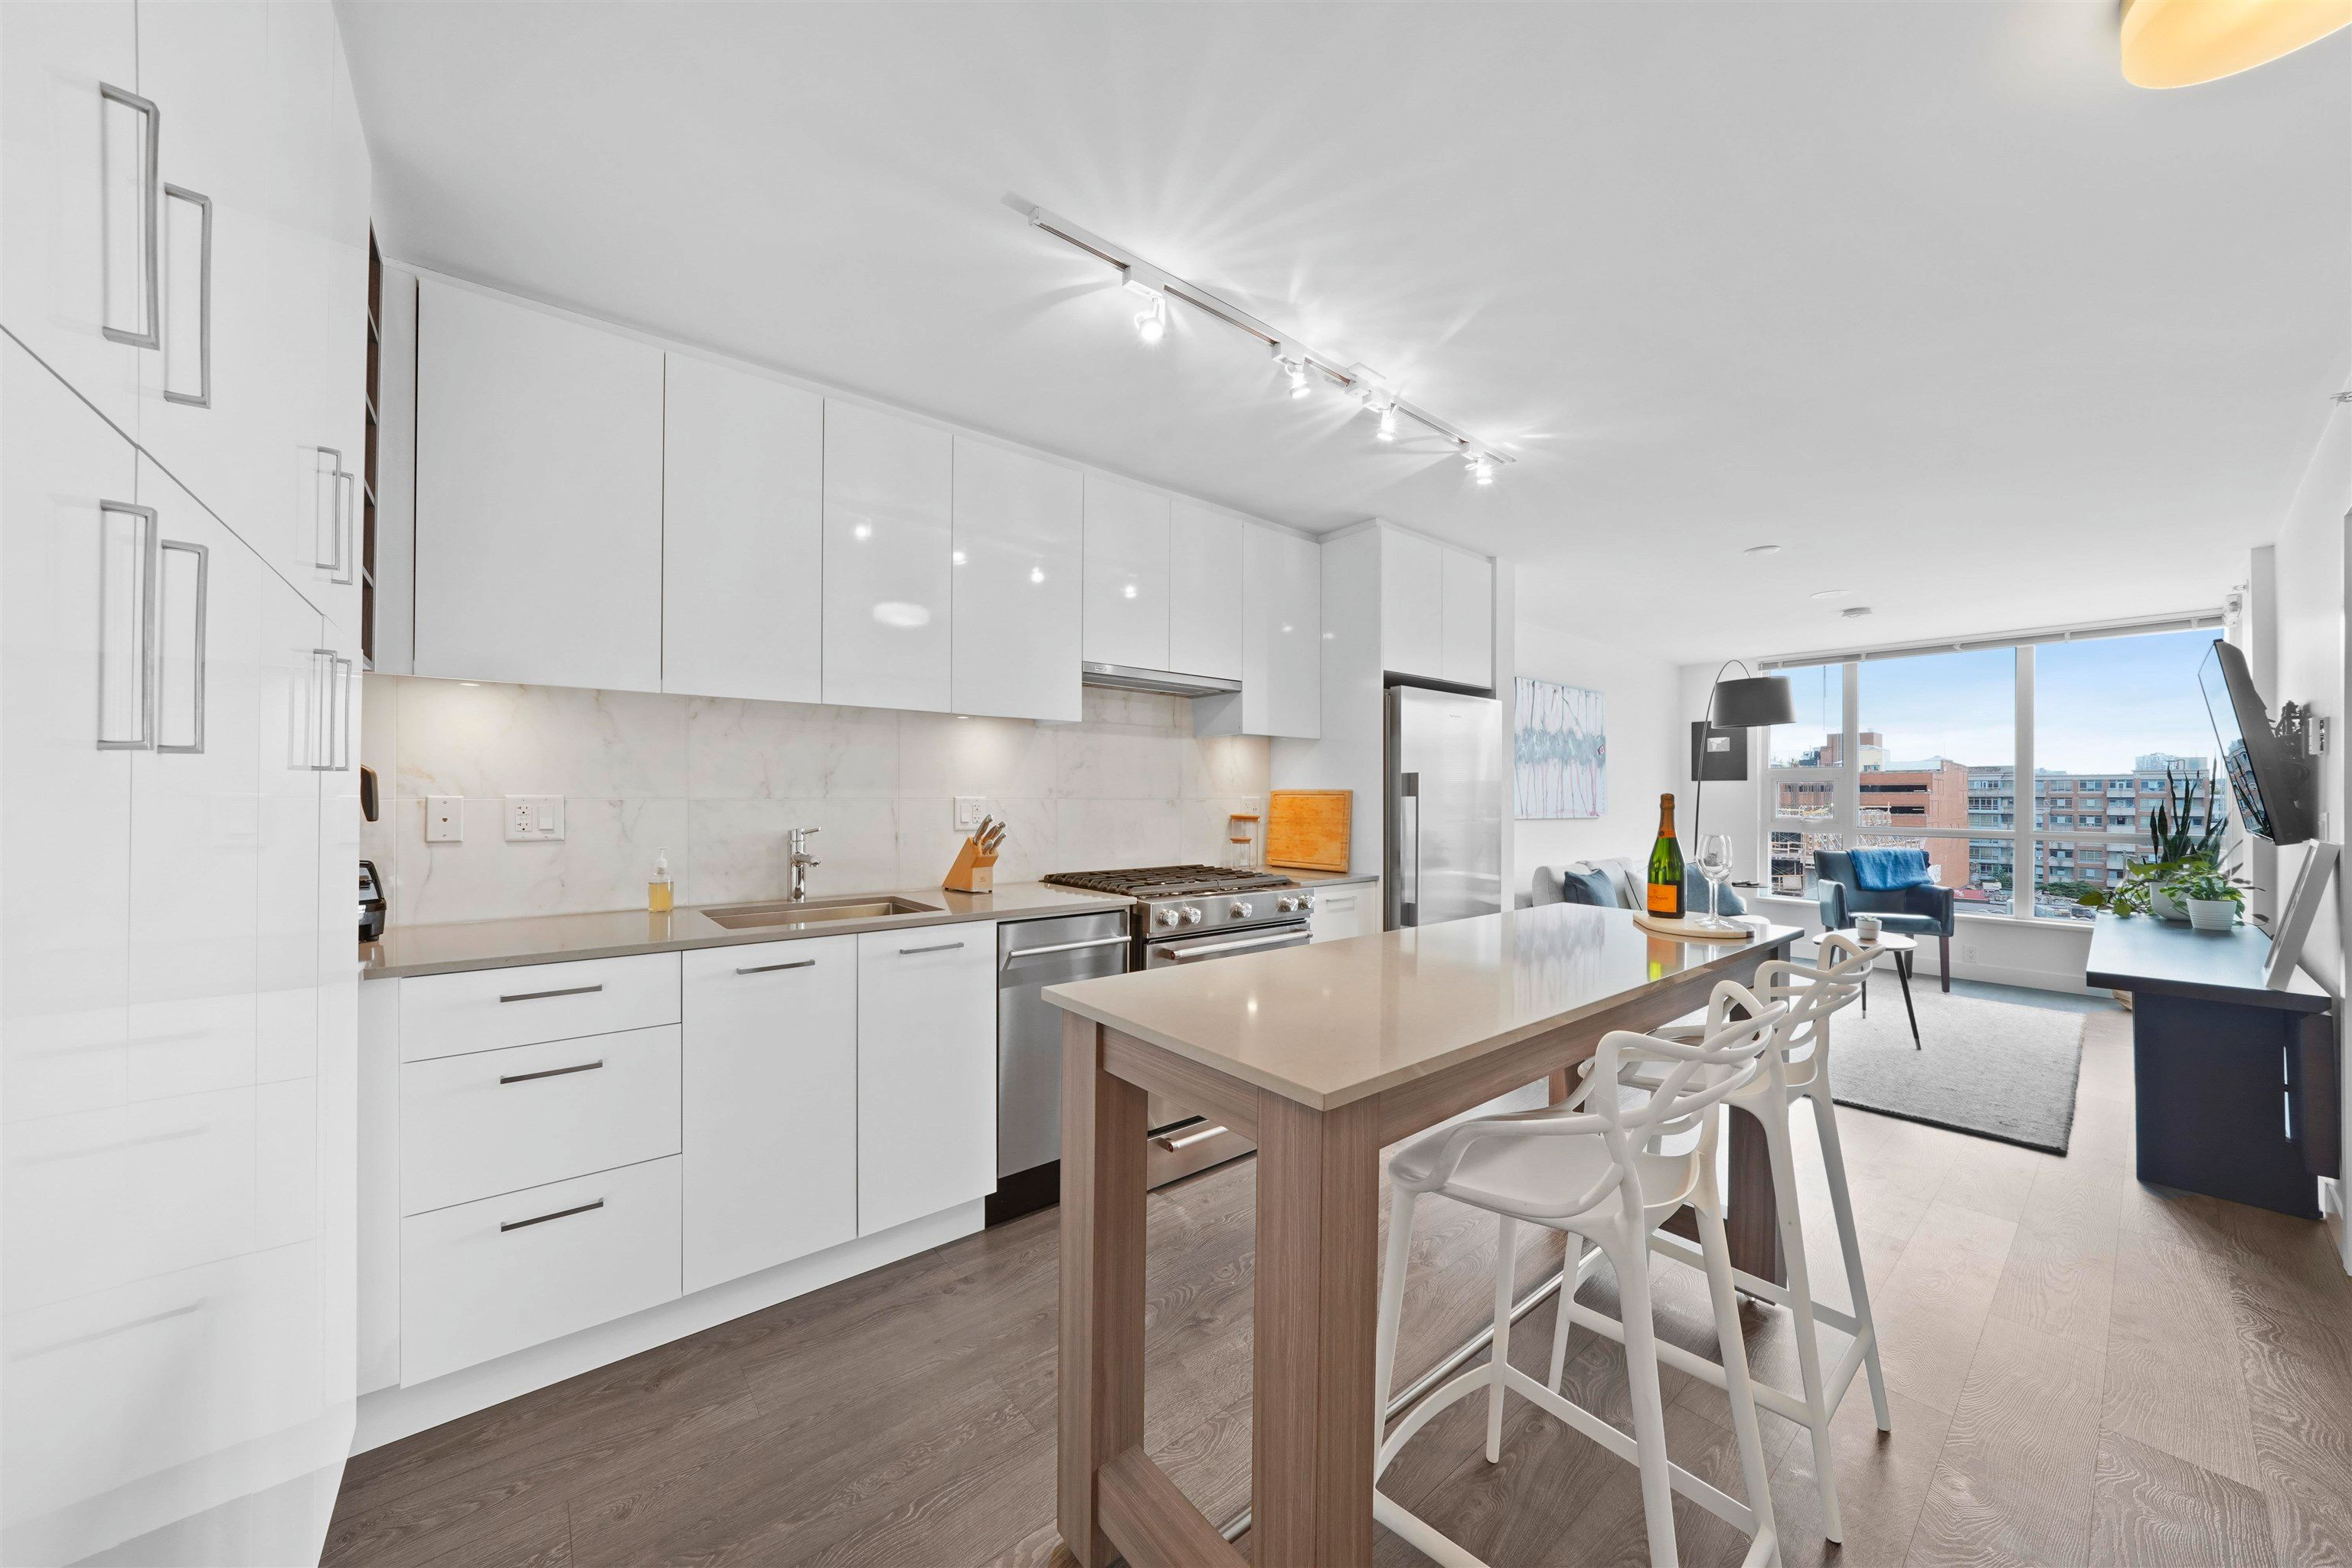 """Main Photo: 803 231 E PENDER Street in Vancouver: Strathcona Condo for sale in """"Framework"""" (Vancouver East)  : MLS®# R2618917"""